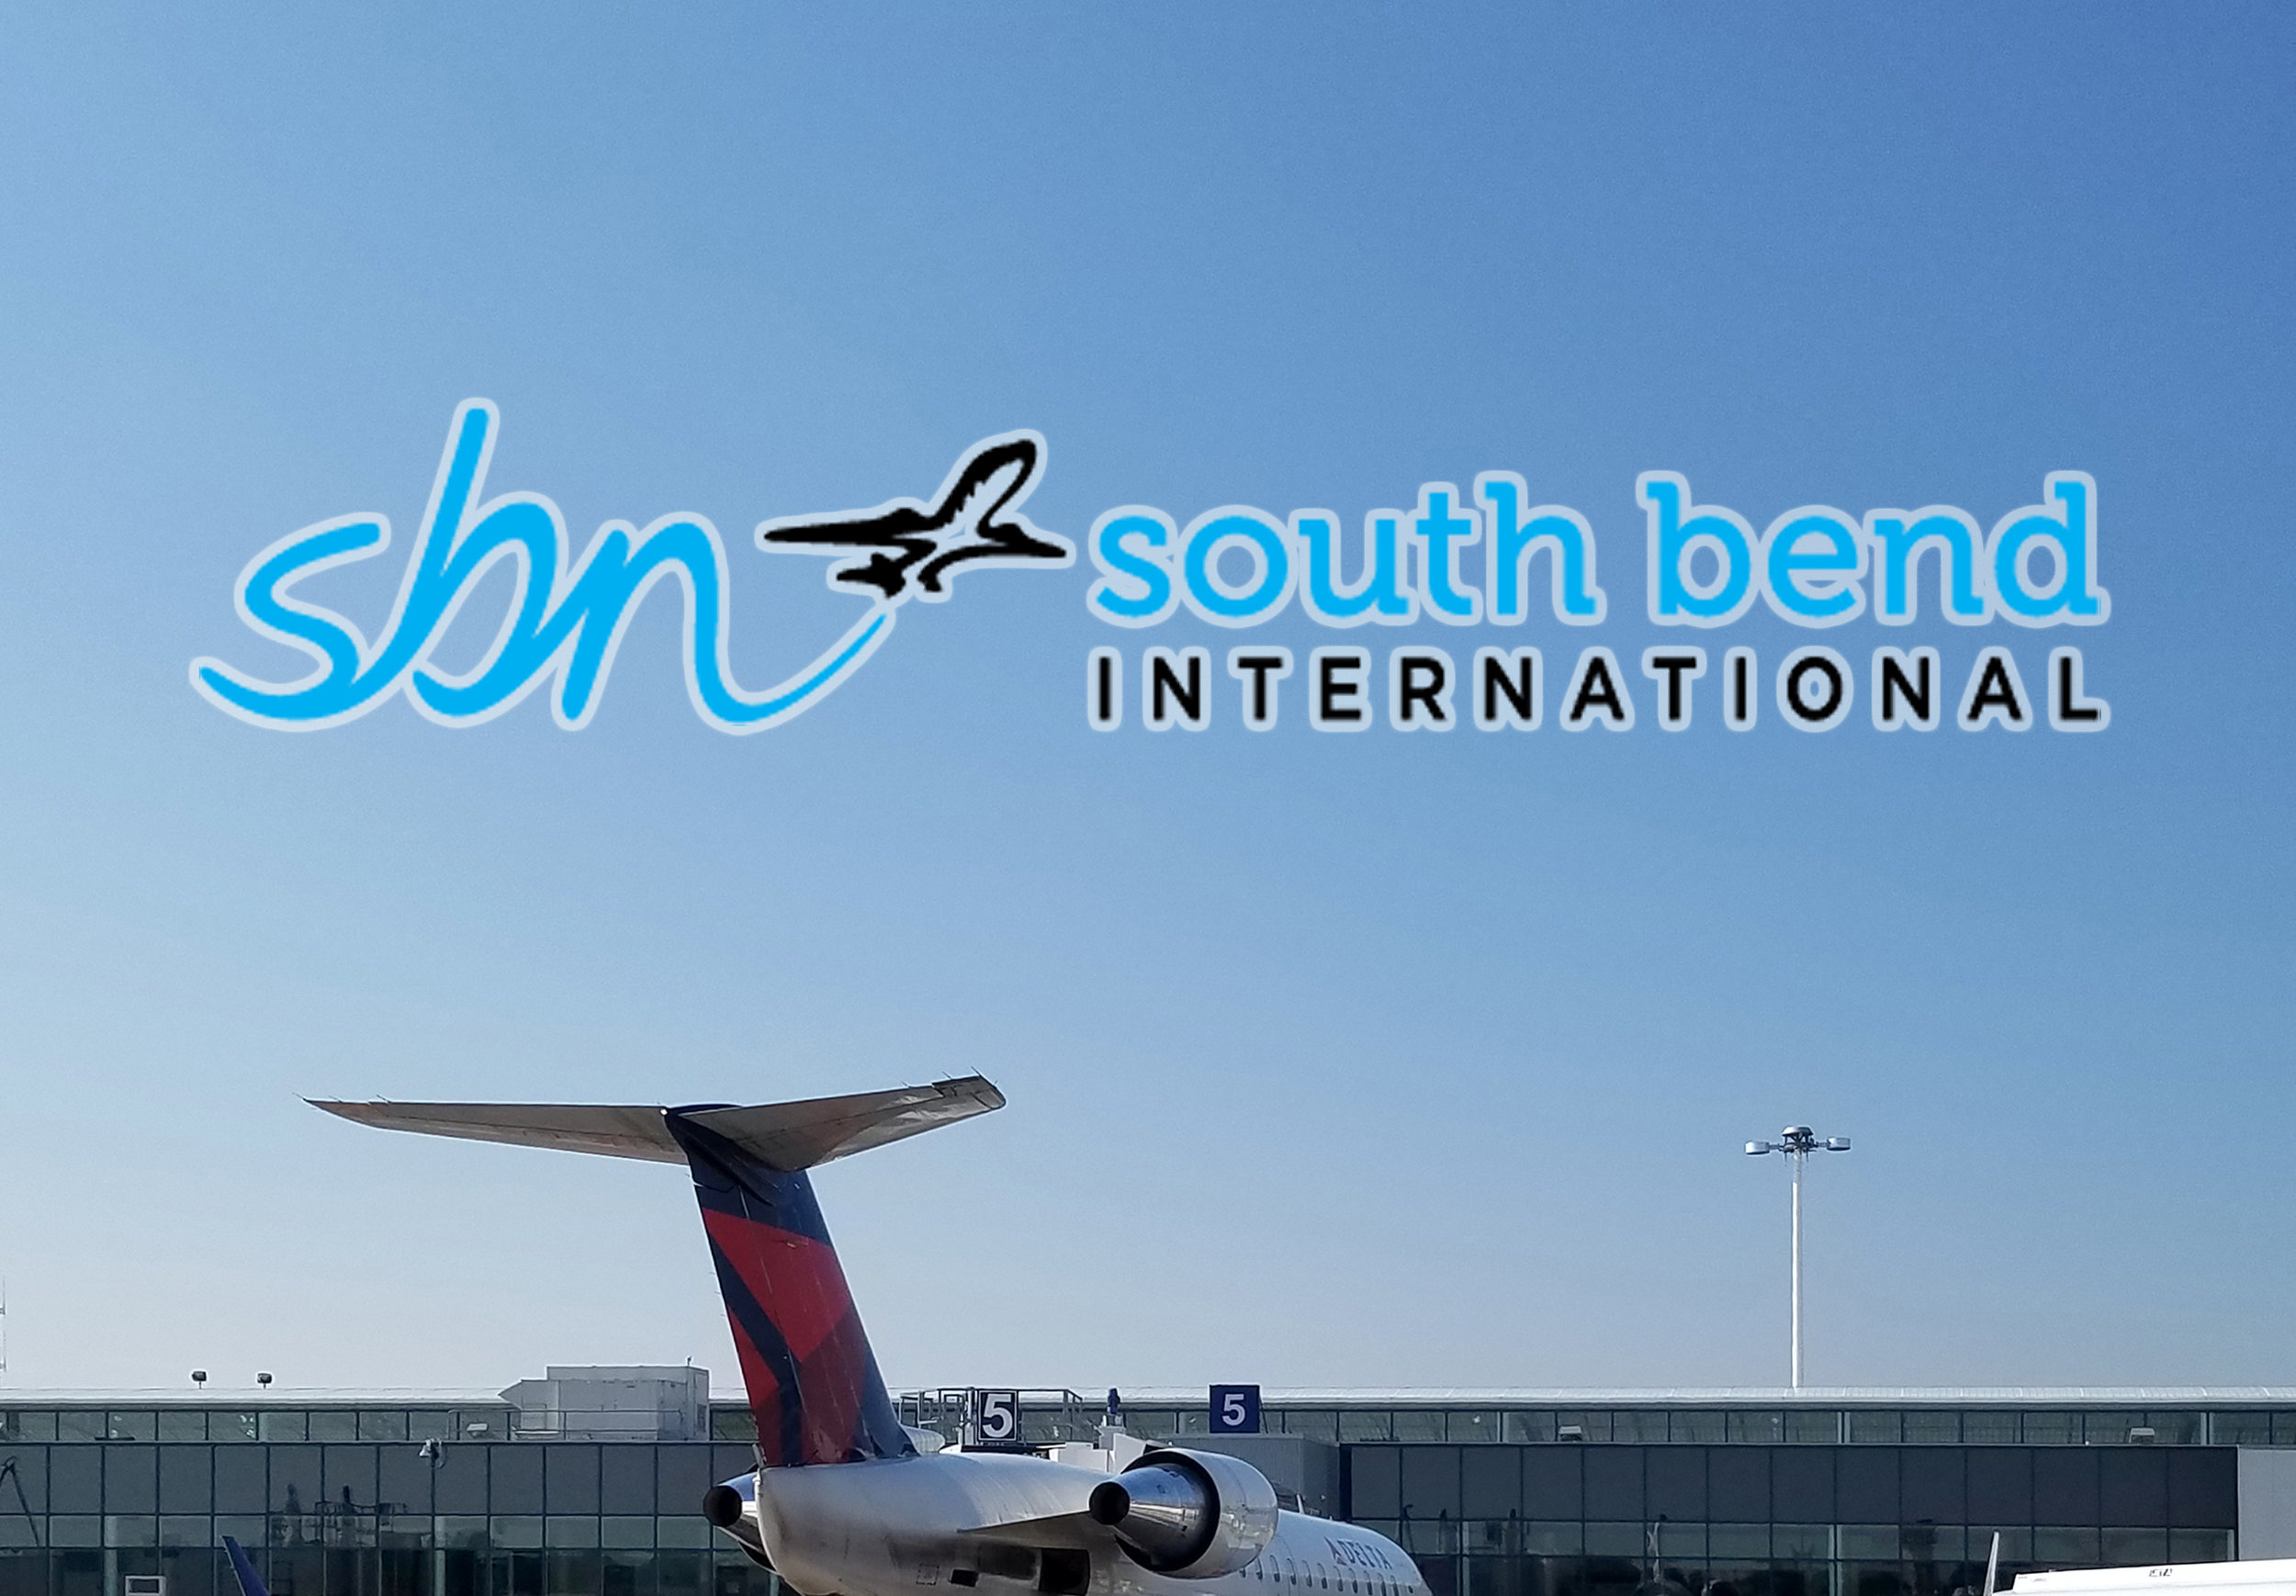 South Bend International Airport Slide 1.jpg